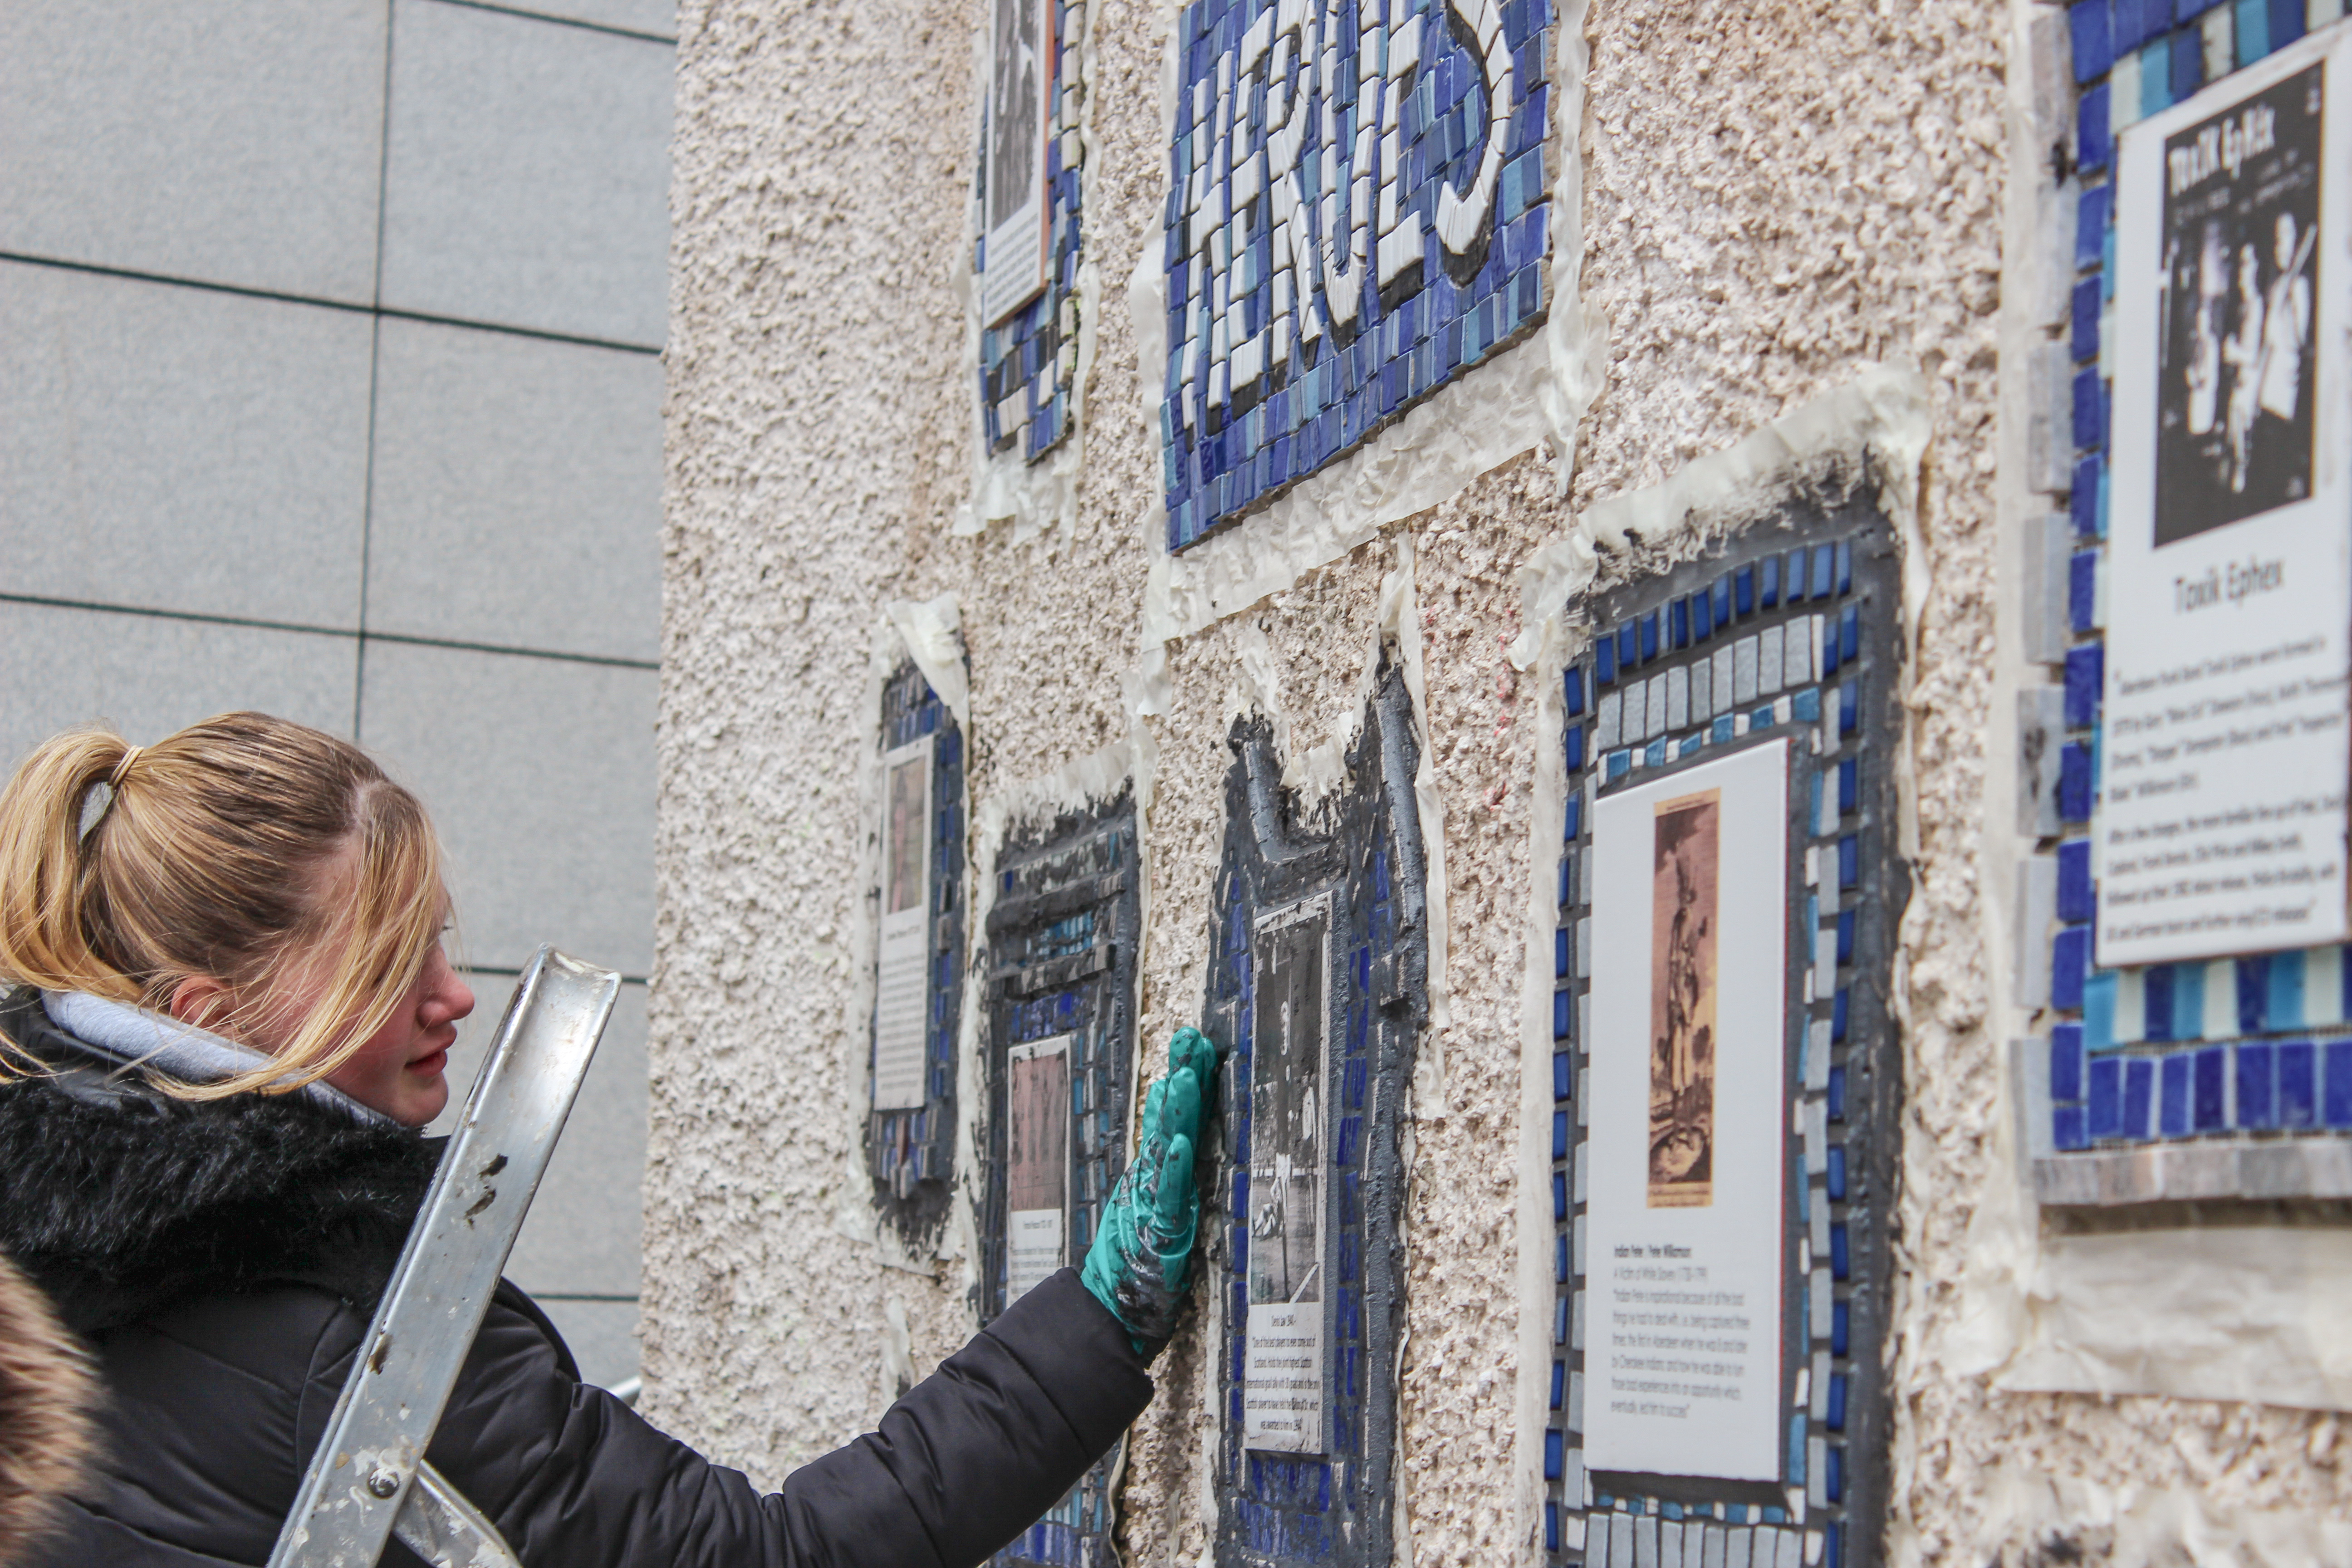 Public appeal to nominate Everyday Heroes for Aberdeen mural